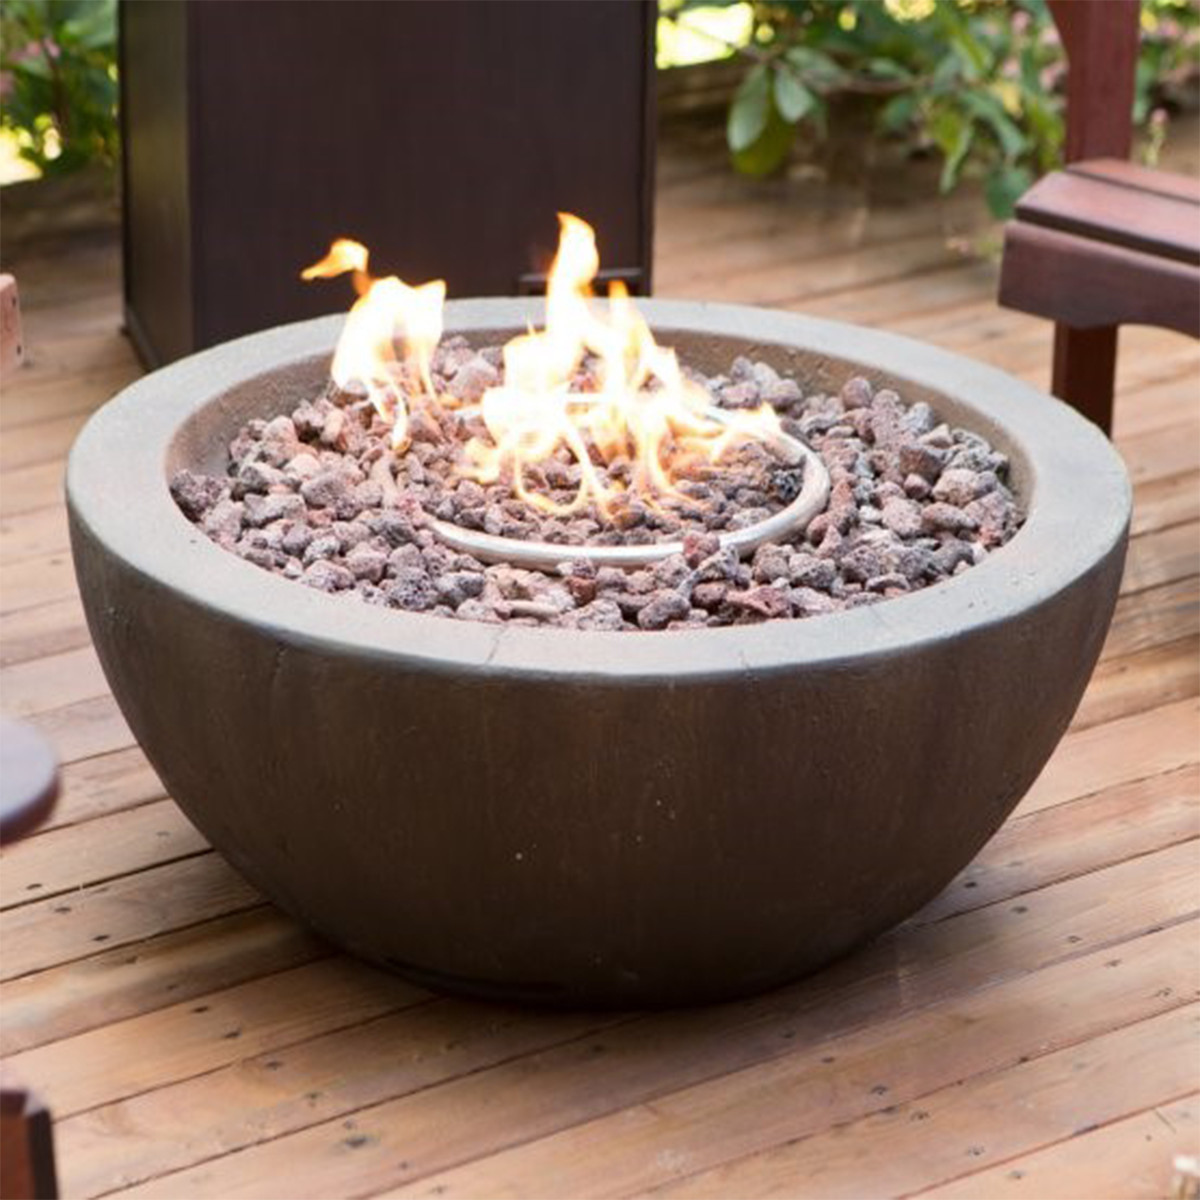 Hayneedle gas fire pit bowl photo